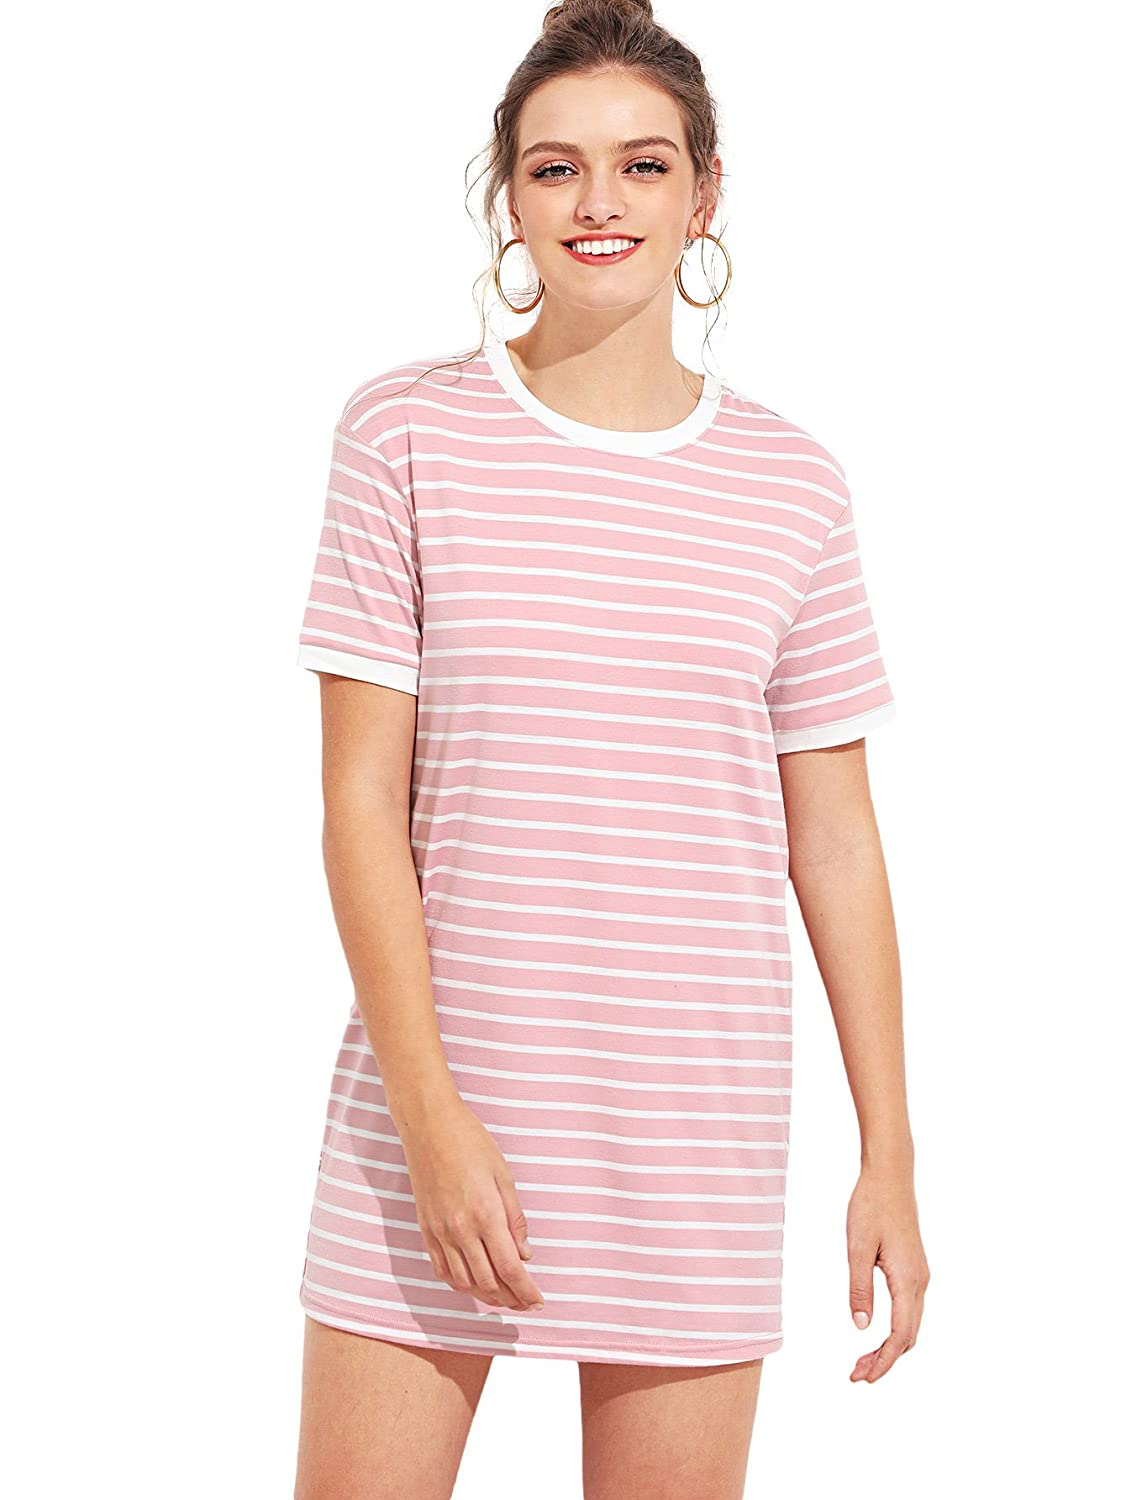 59212f36b2 SheIn Women's Short Sleeve Crew Neck Shift Striped T-Shirt Dress at Amazon  Women's Clothing store: